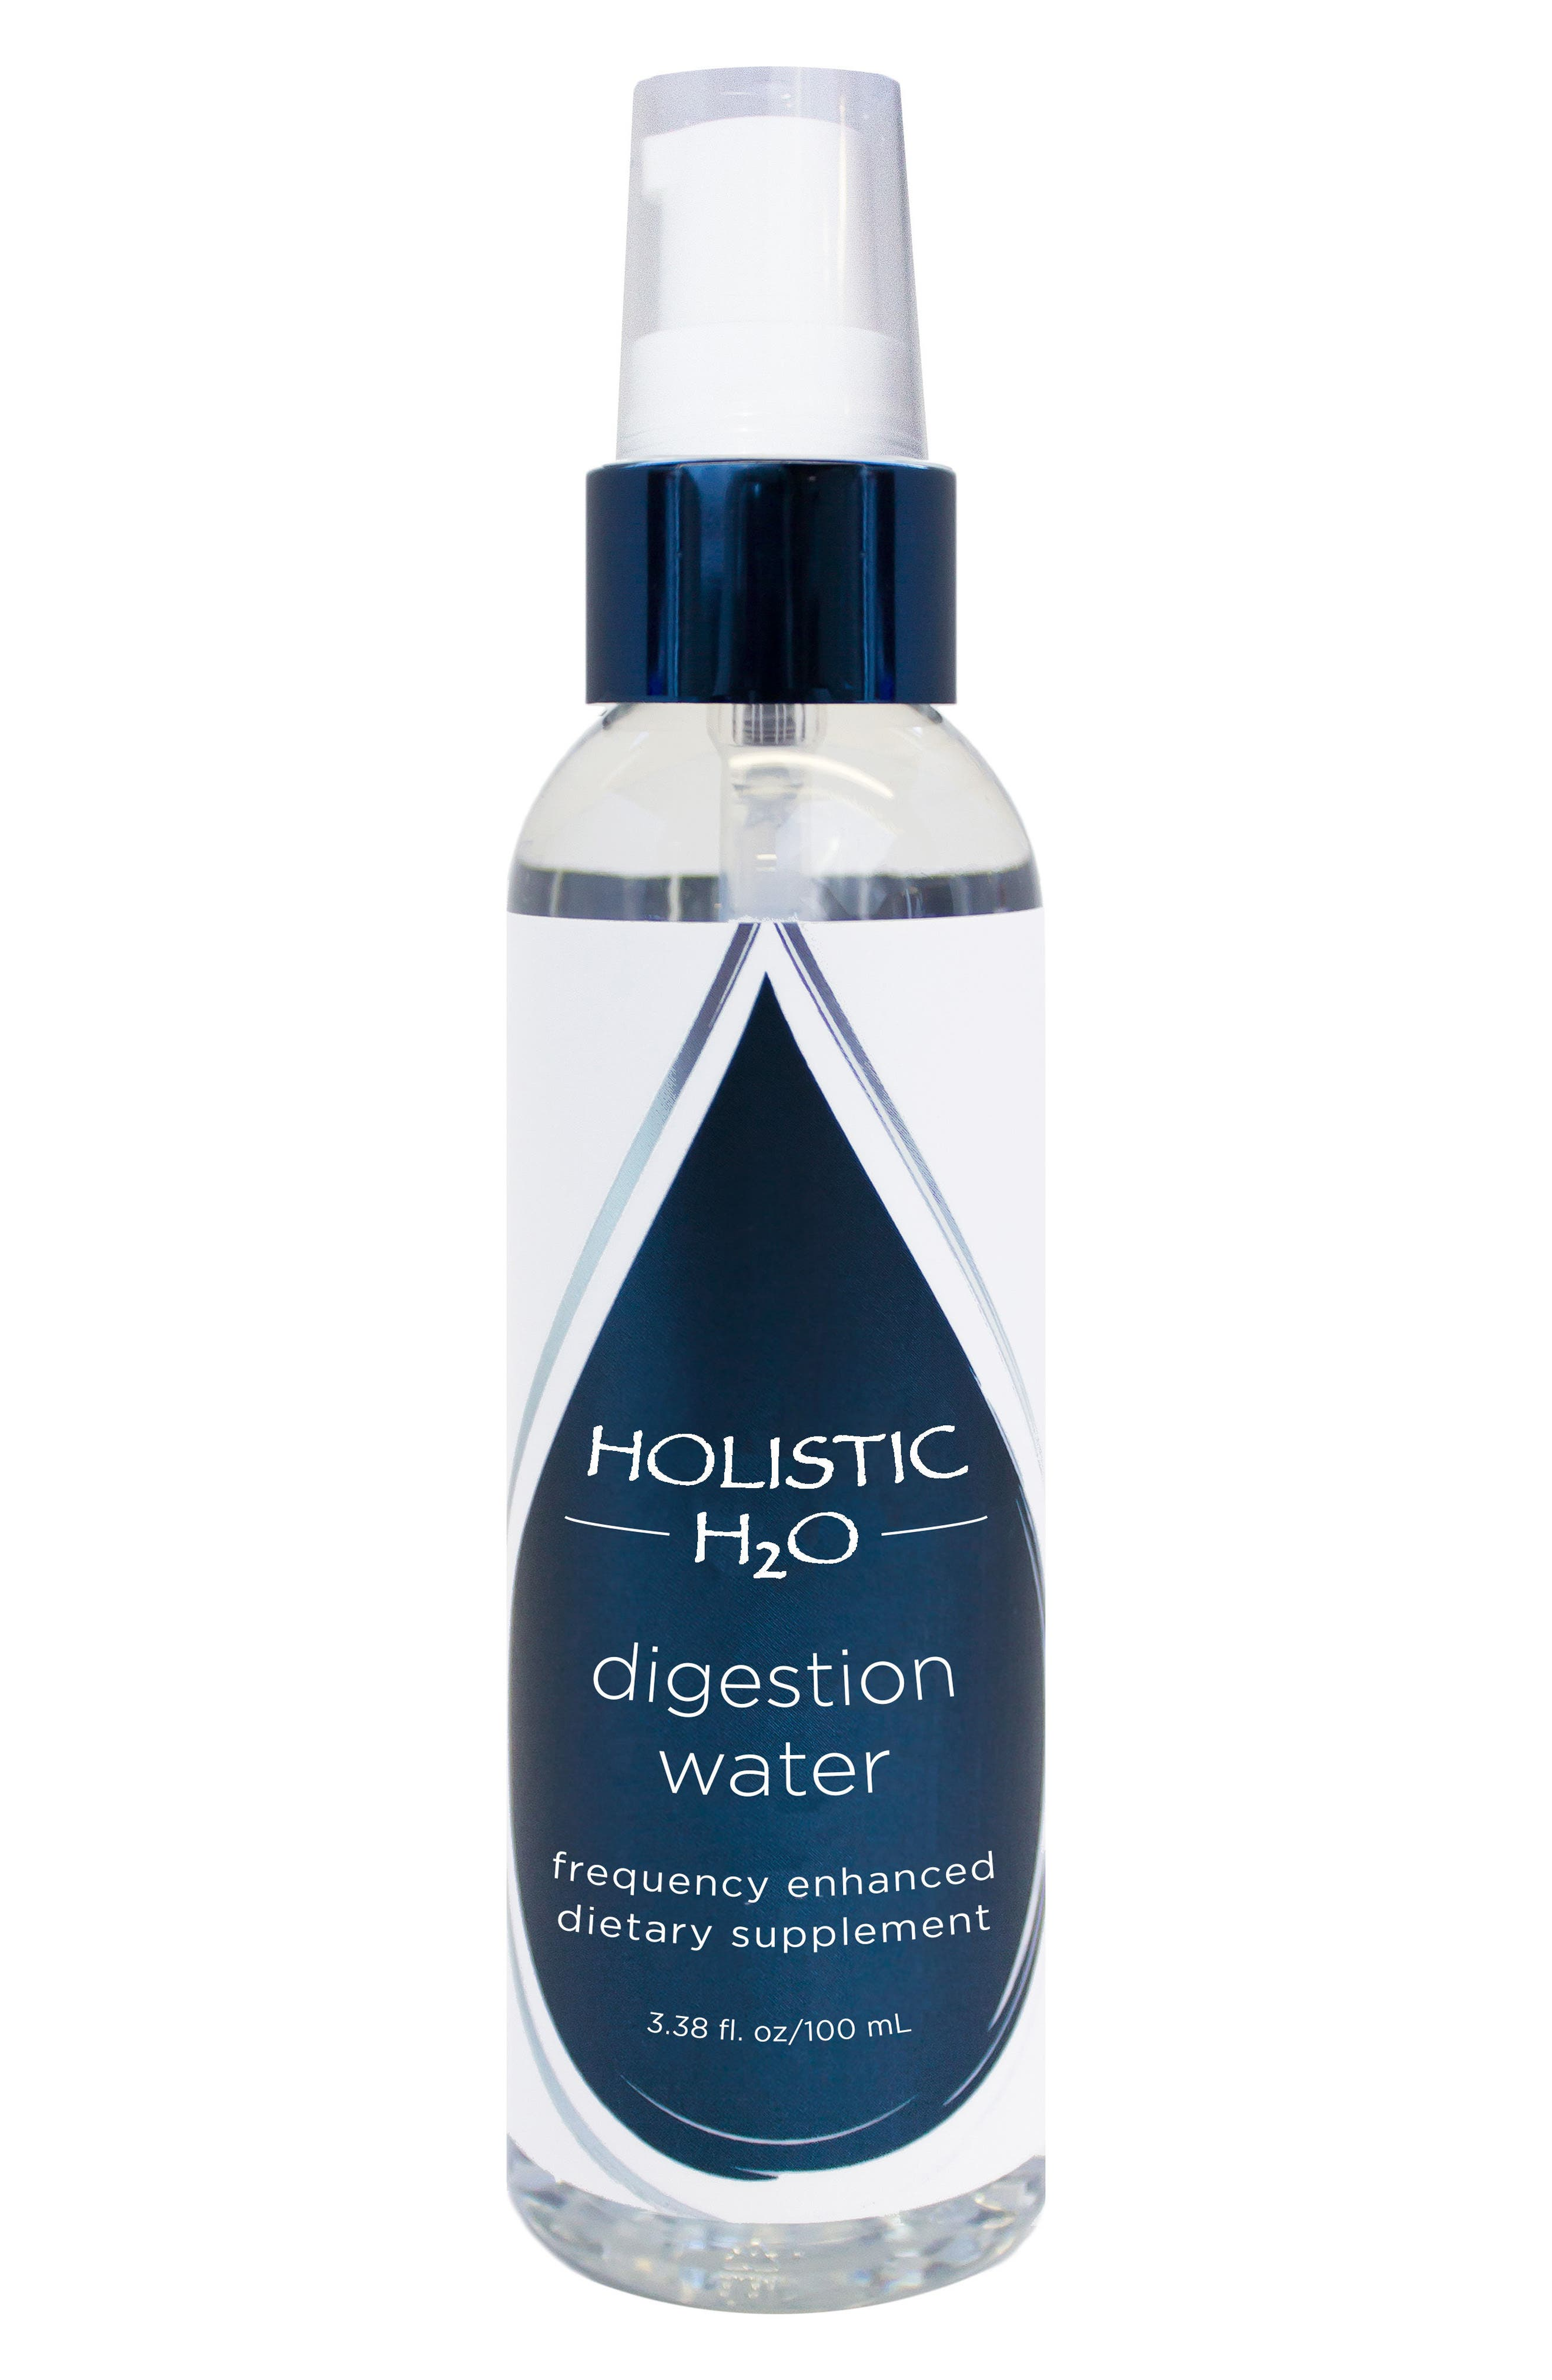 Main Image - Holistic H20 Digestion Water Frequency Enhanced Dietary Supplement